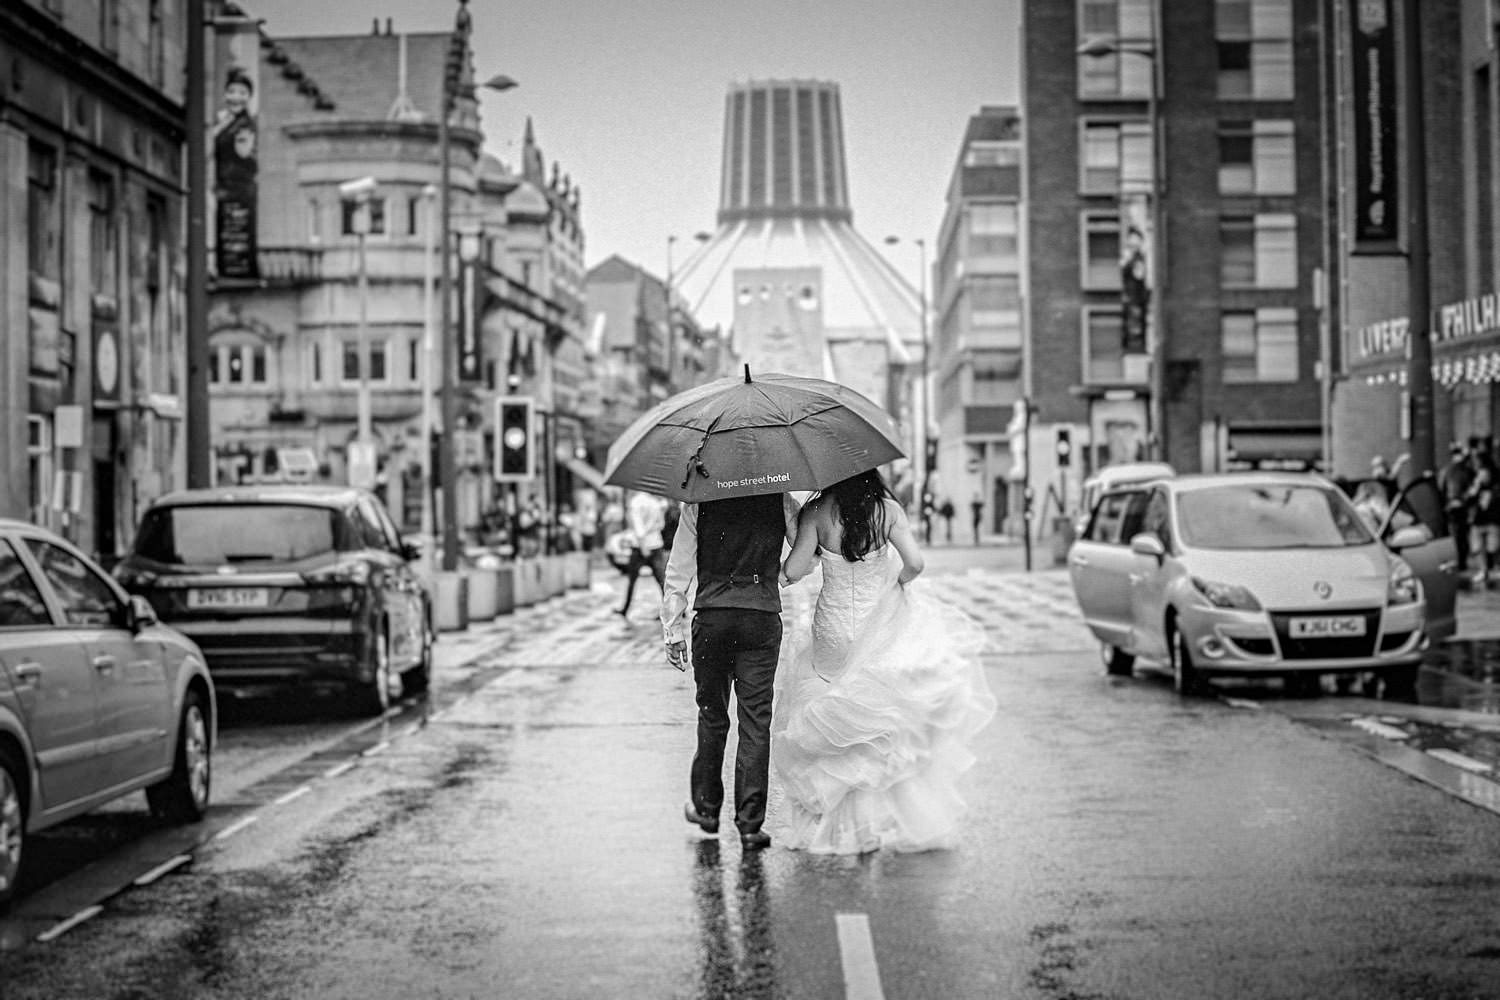 Liverpool wedding photographer. Bride and groom walking down Hope st Liverpool in the rain with unberella